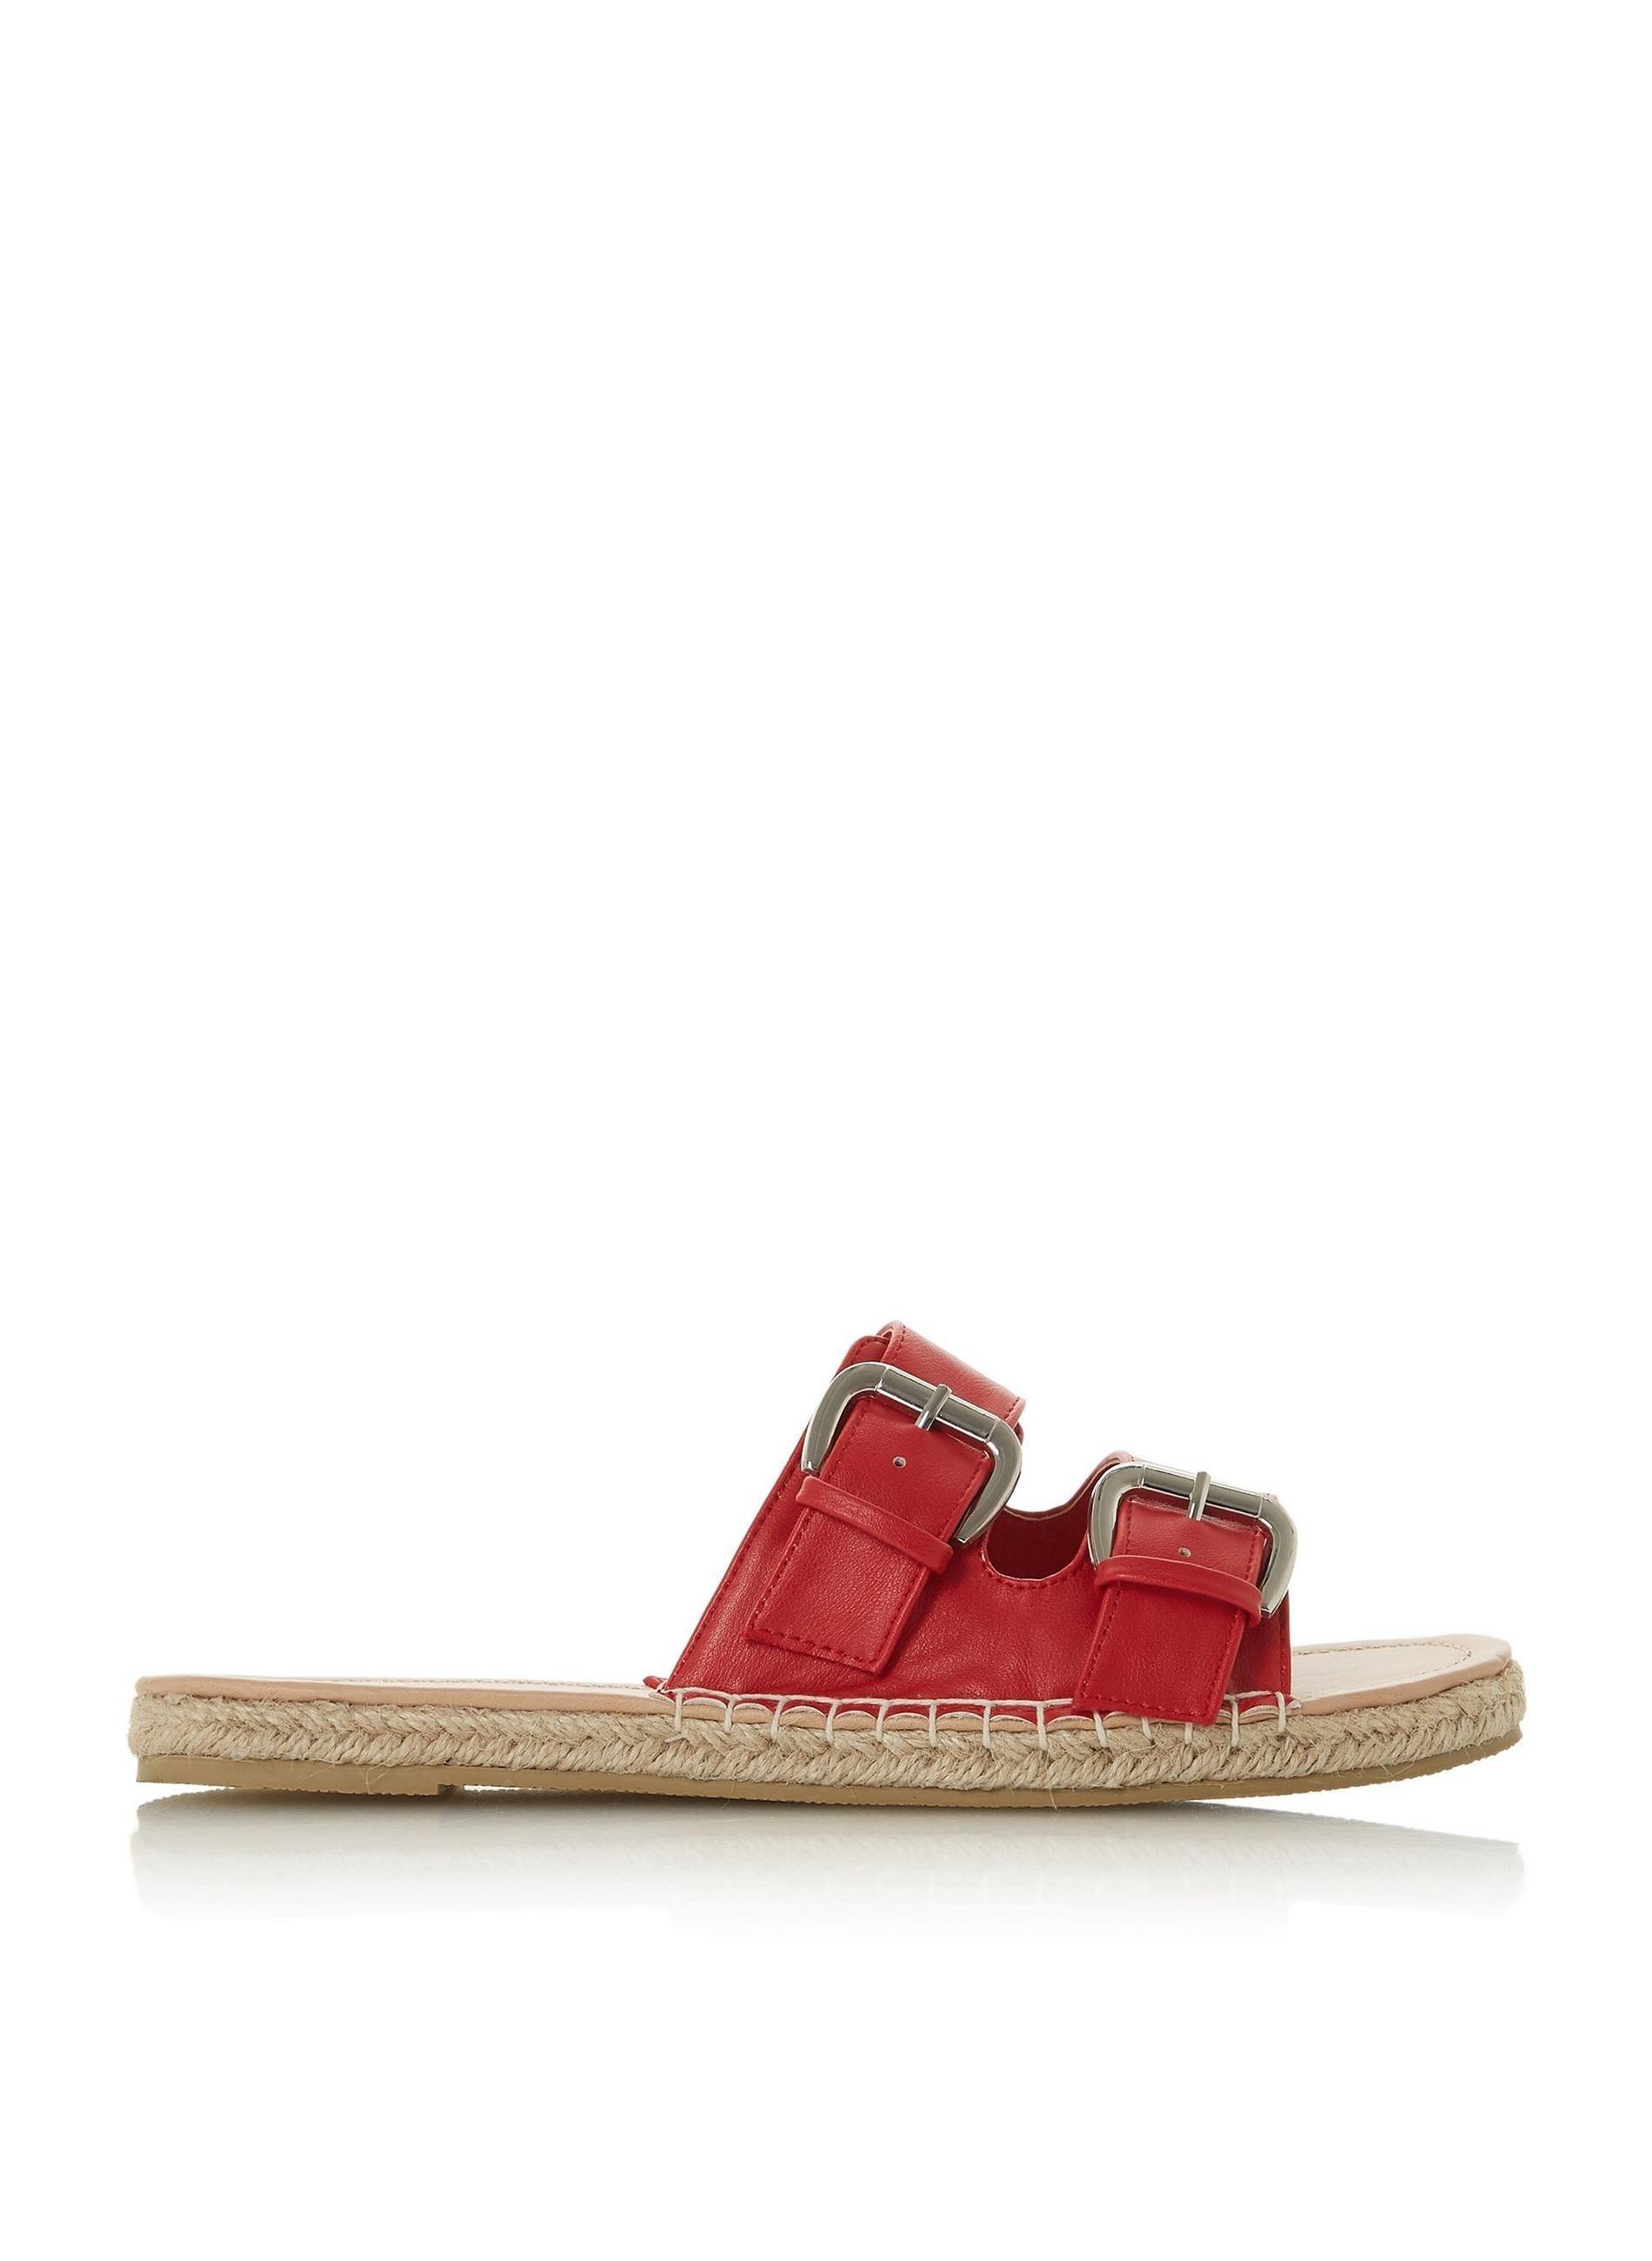 ca732fc77a71 Lyst - Dune By Dune Red  laurens  Ladies Flat Sandals in Red